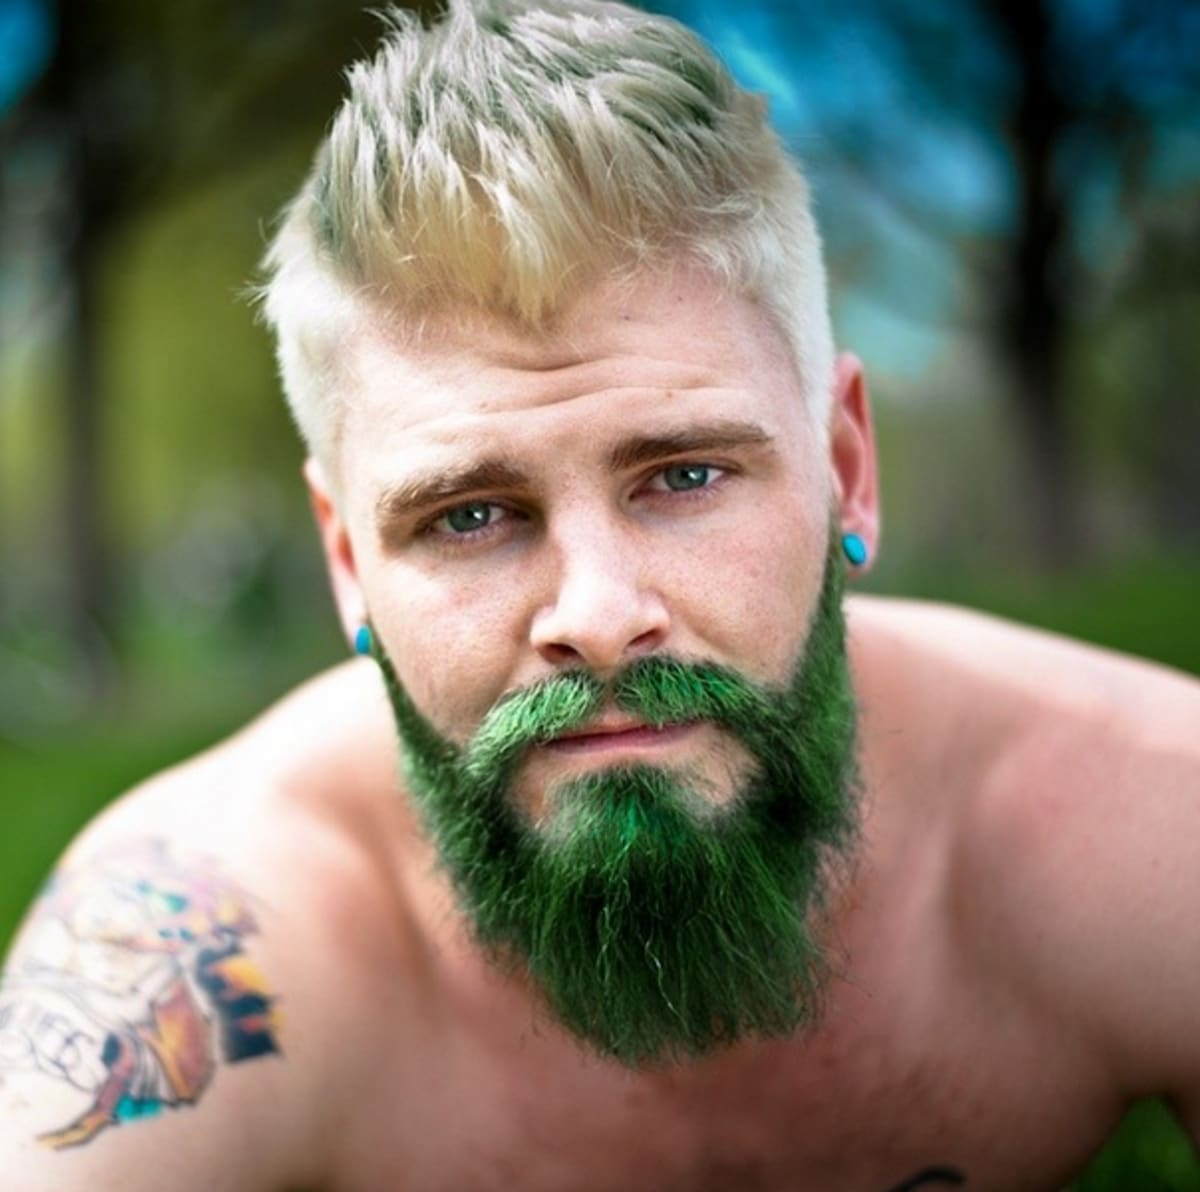 Men Are Dyeing Their Beards Bright Colors